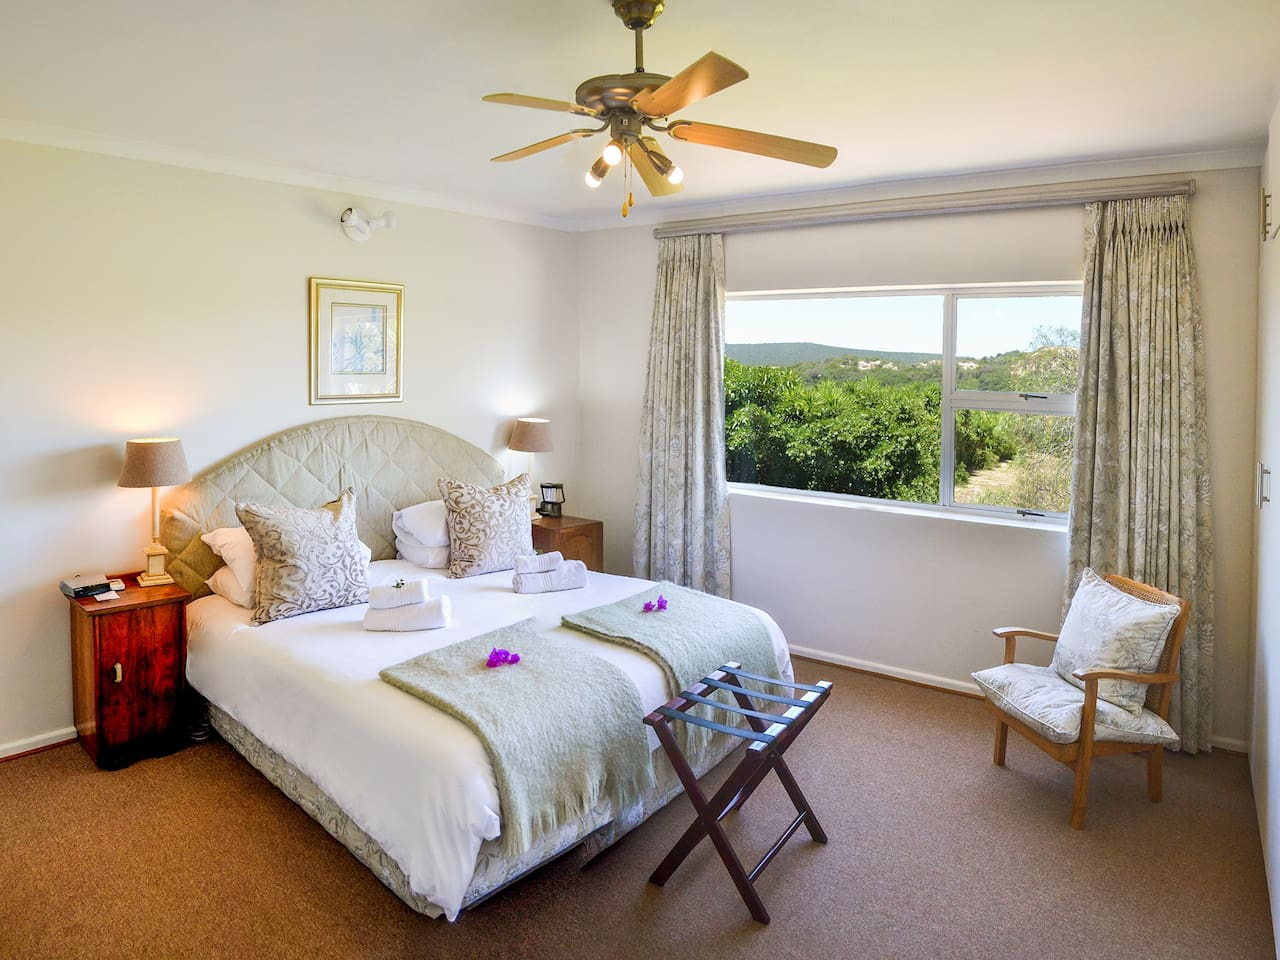 Fish Eagle Bedroom Suite. A sleeper couch available for a child up to 13 years old.